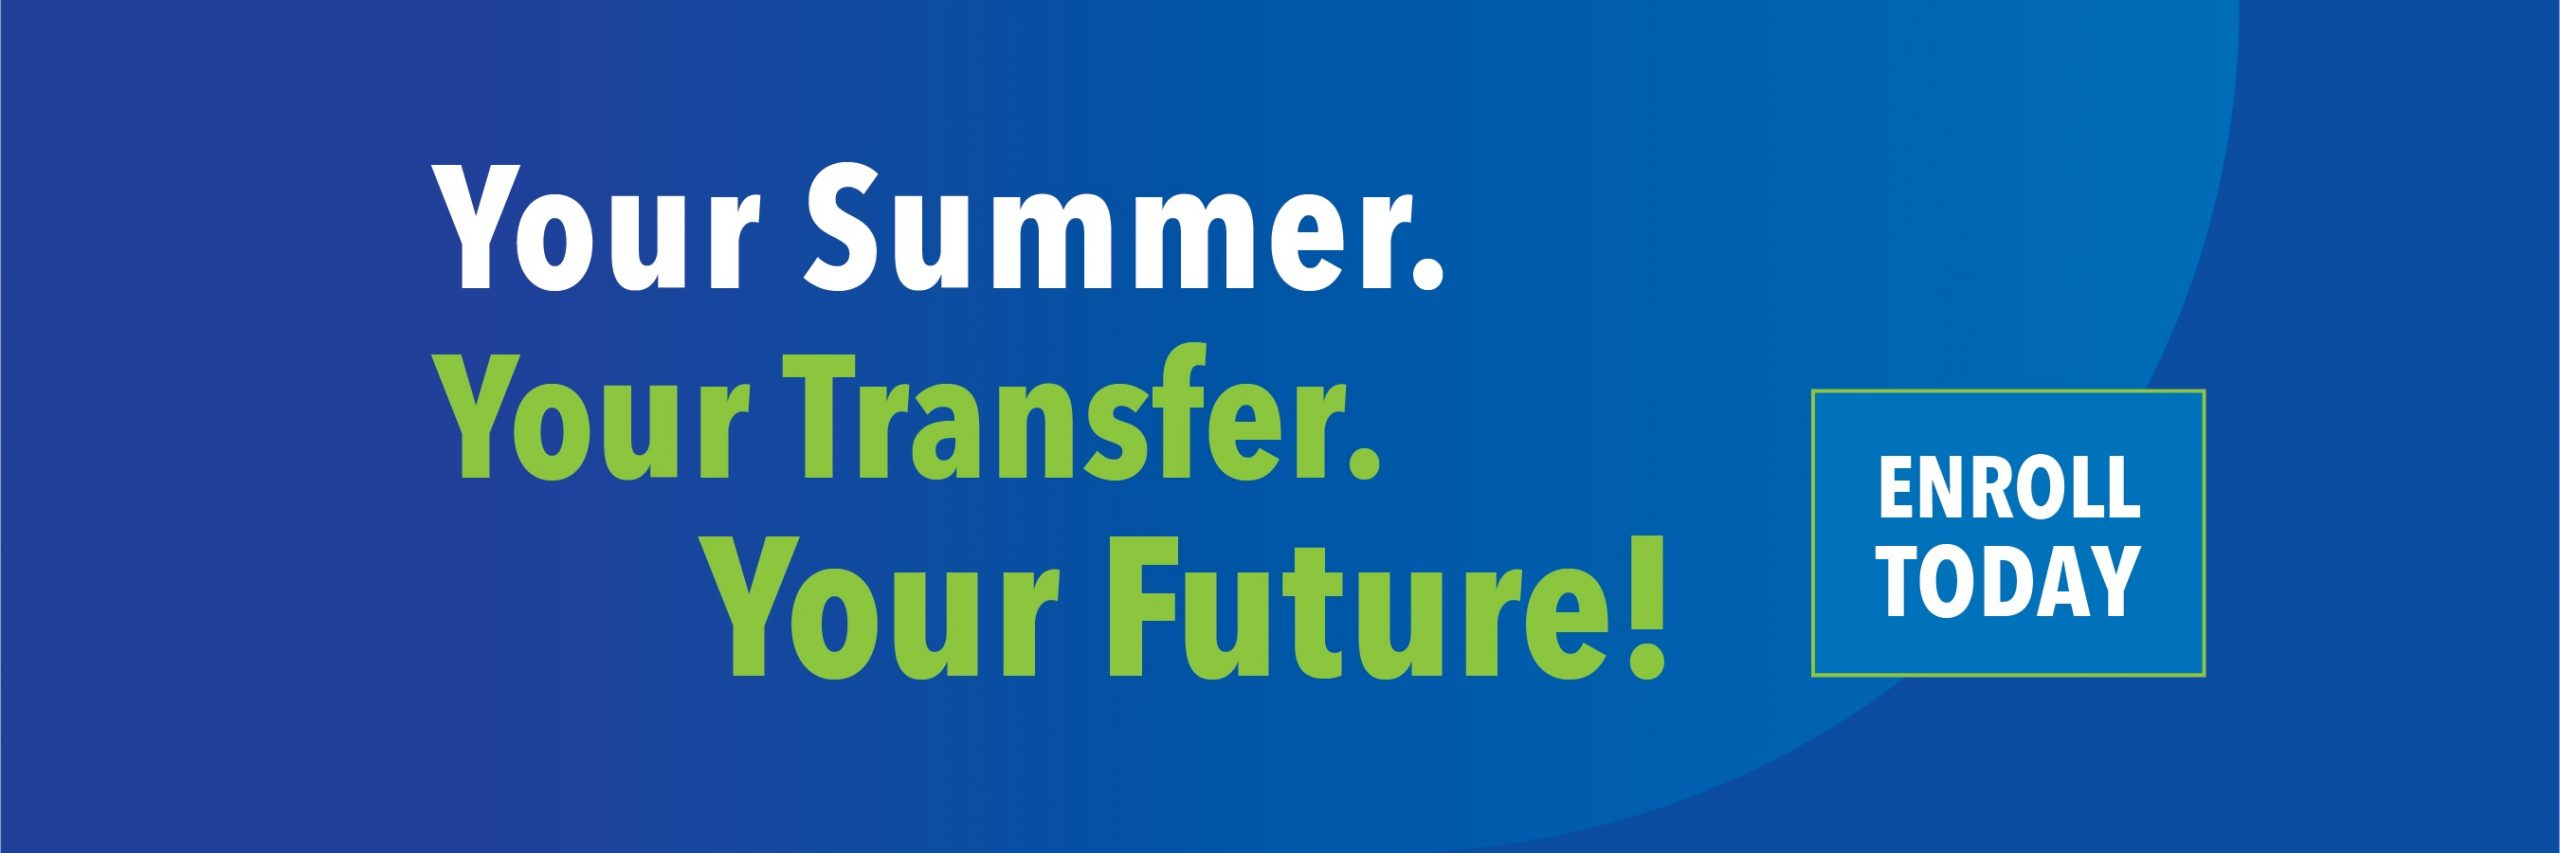 Your Summer. Your Transfer. Your Future.